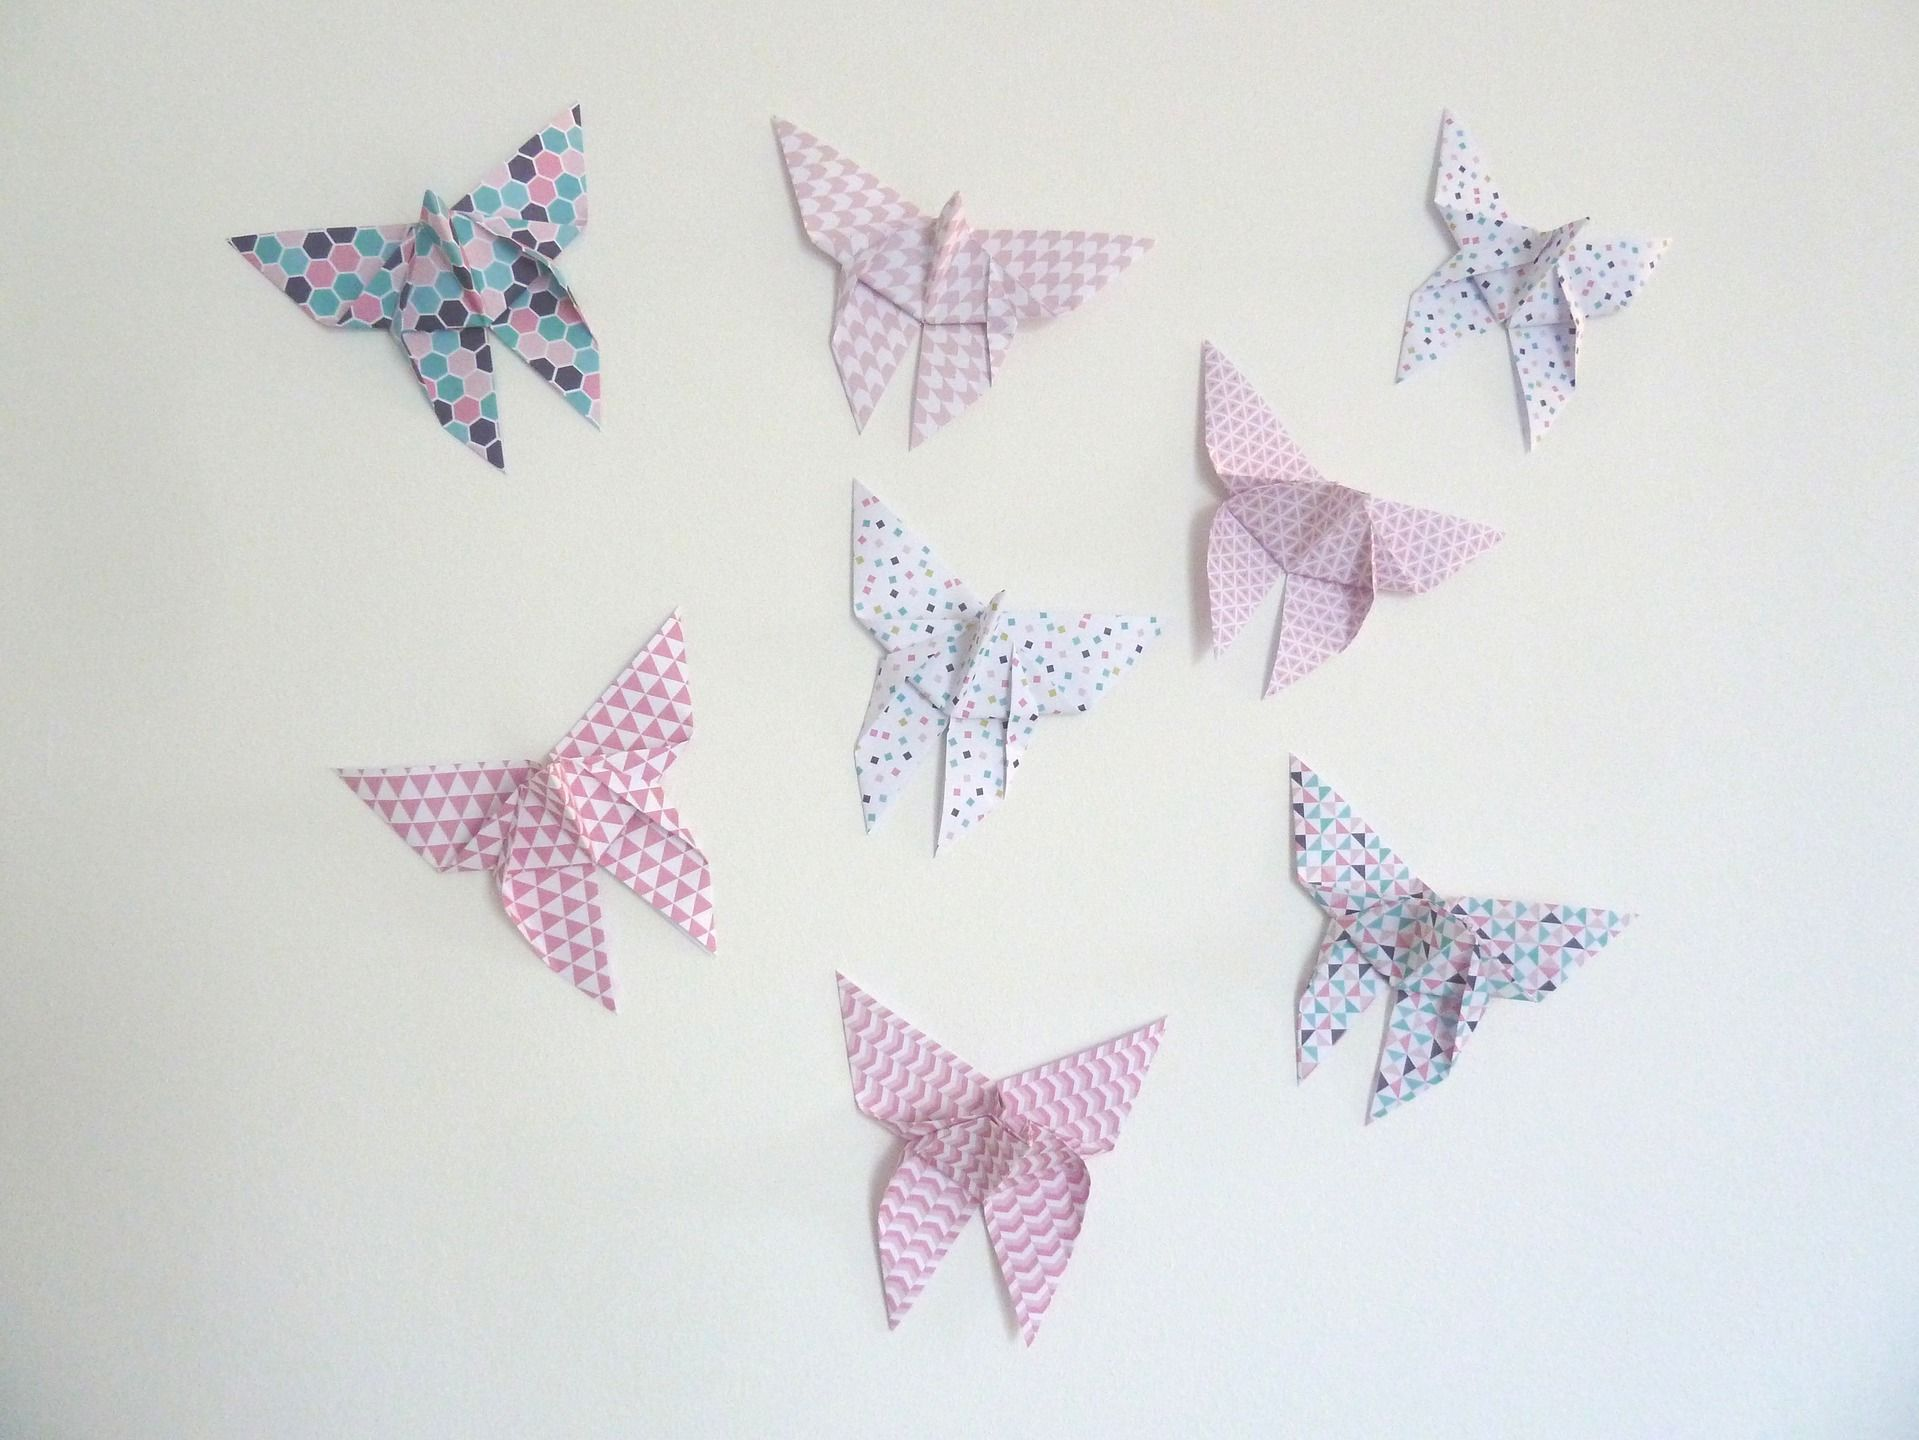 Stickers Autocollants Papillon En Origami Pour Décoration - Enfants decoration chambre autocollants